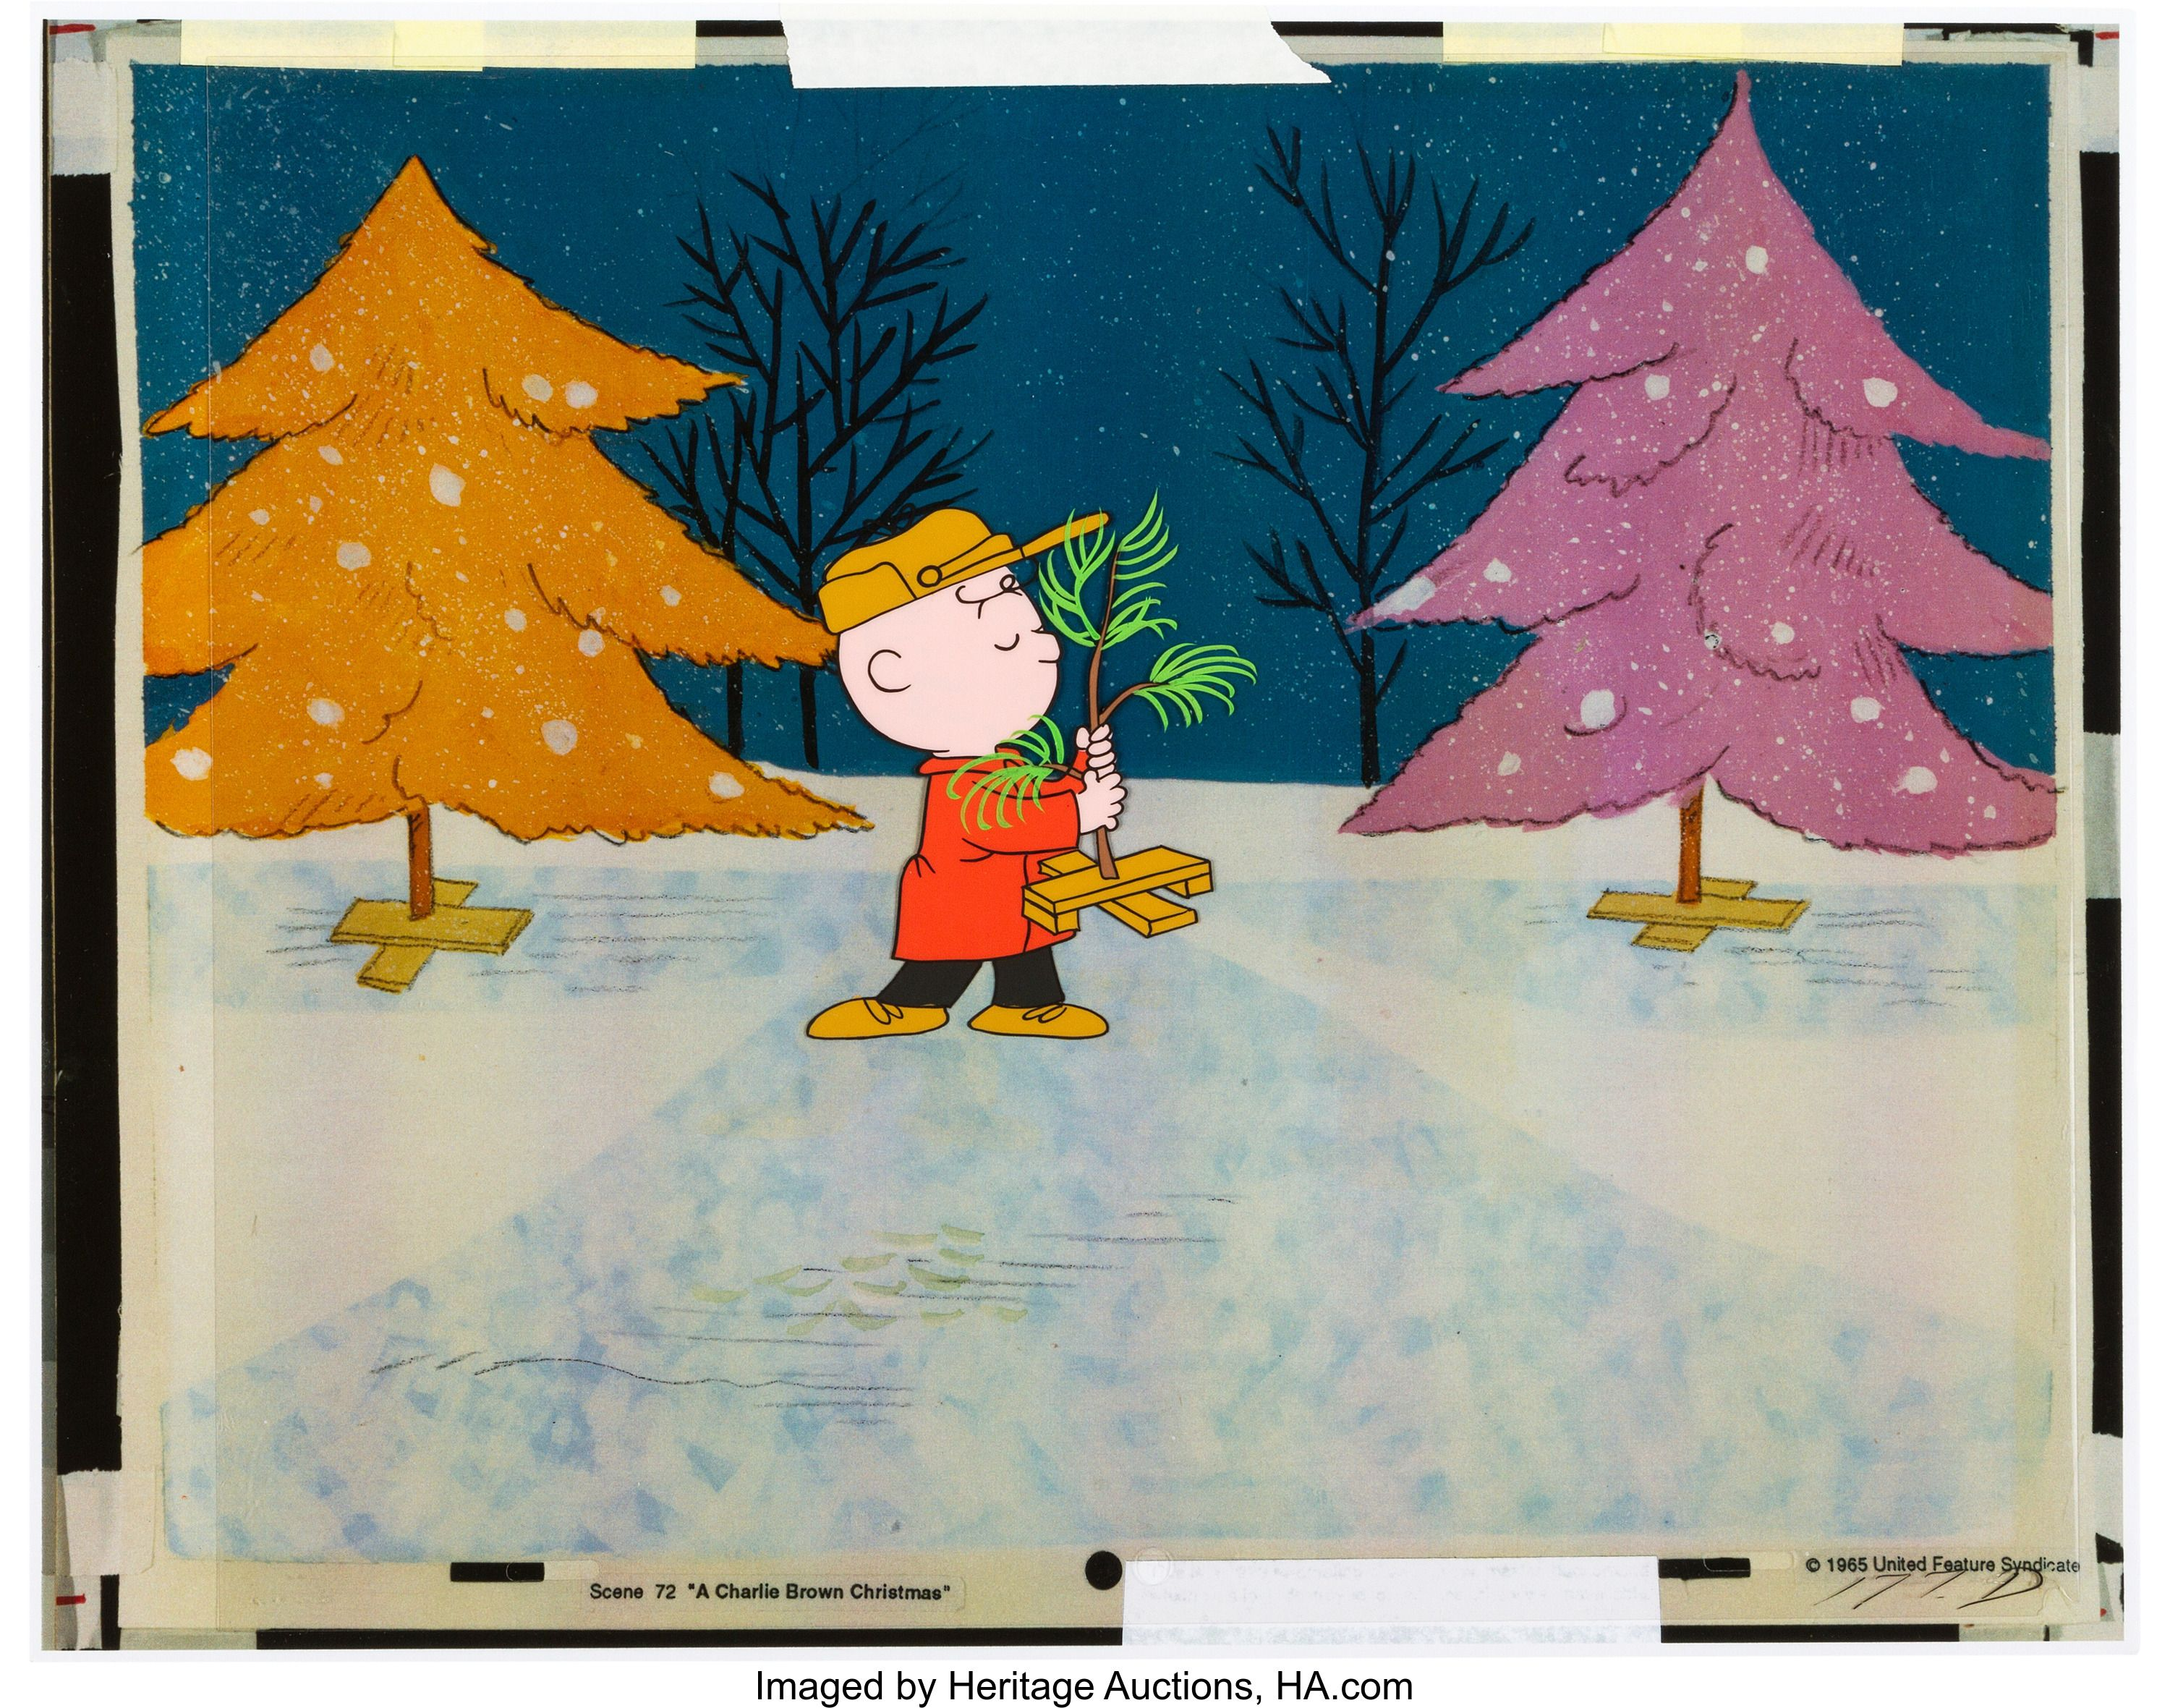 A Charlie Brown Christmas Charlie Brown And Christmas Tree Production Cel Bill Melendez Charlie Brown Christmas Christmas Tree Lots Mickey Mouse And Friends